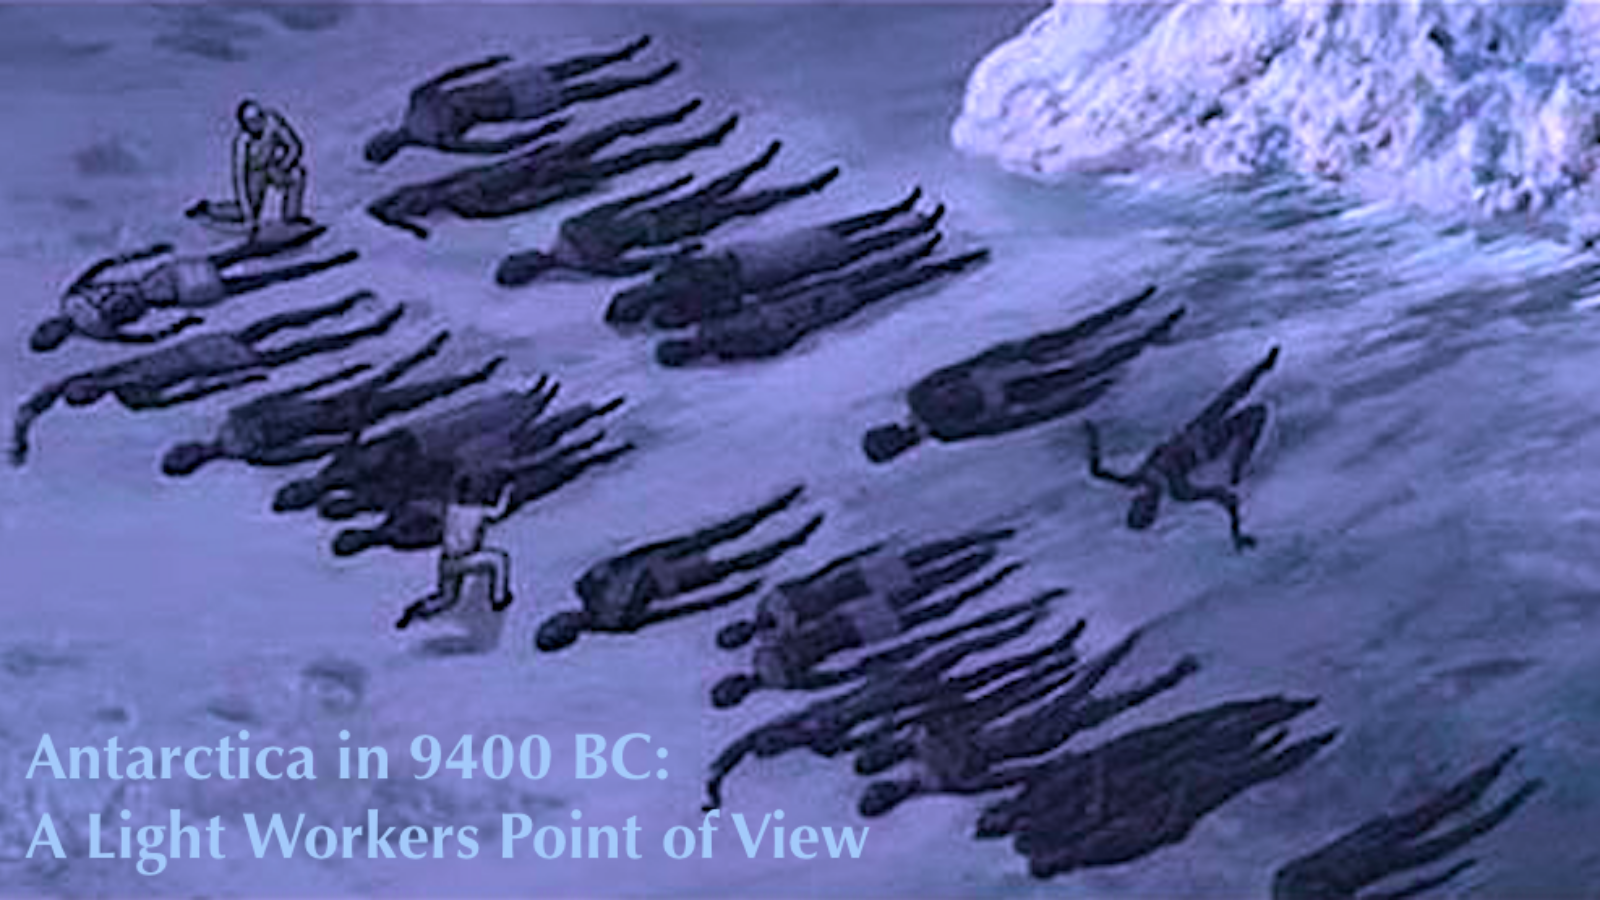 Rows of pre-Adamite bodies taken from ruins where they had been flash frozen during an ancient disaster. Illustration created for Gaia from descriptions by Corey Goode from his observations.